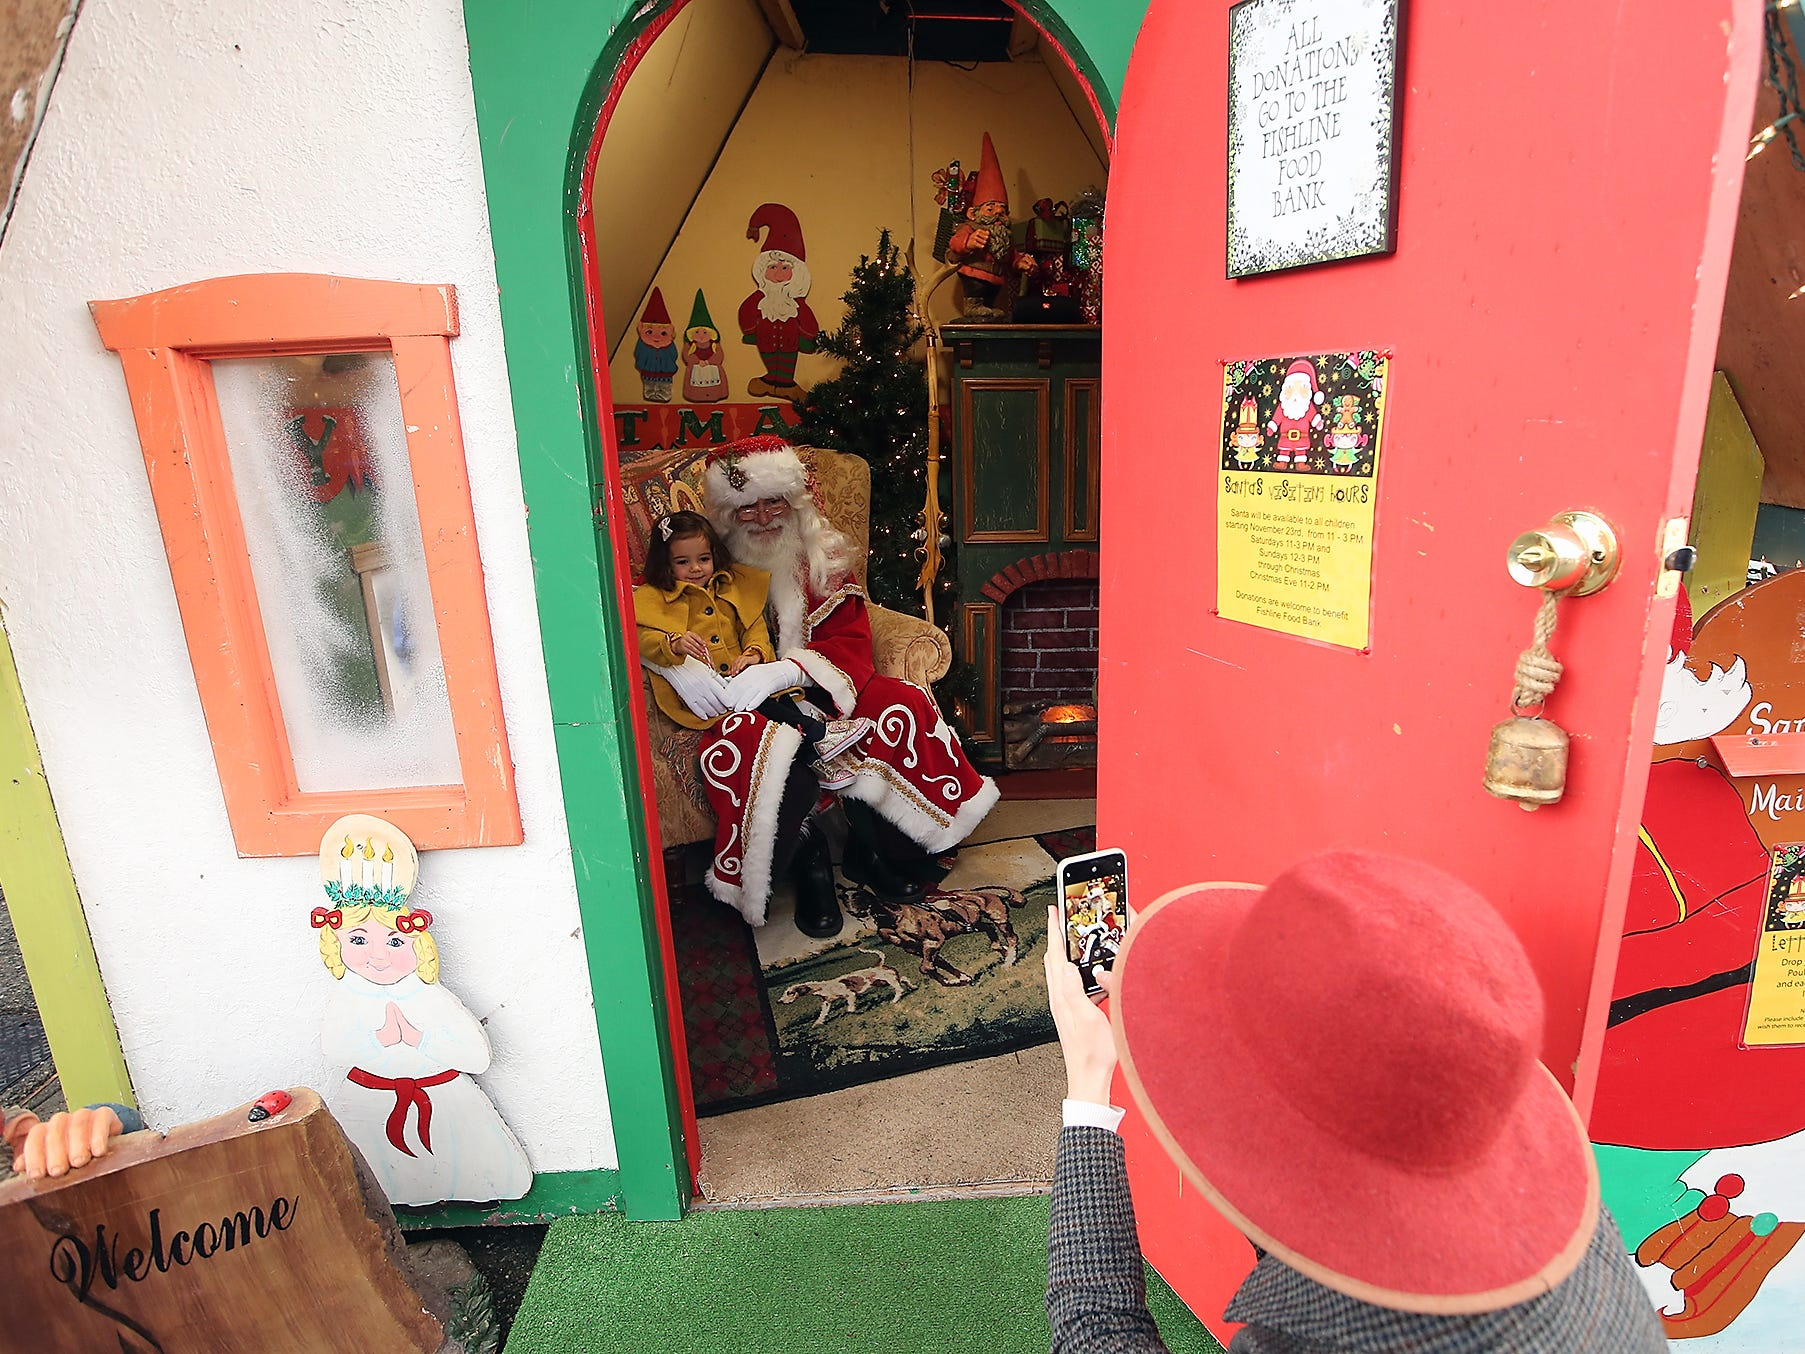 Nordic Father Christmas, played by Danny Fritts, holds Luna Junker, 3, of Bainbridge Island, on his lap while mom Hana snaps a photo on Friday, November 23, 2018.